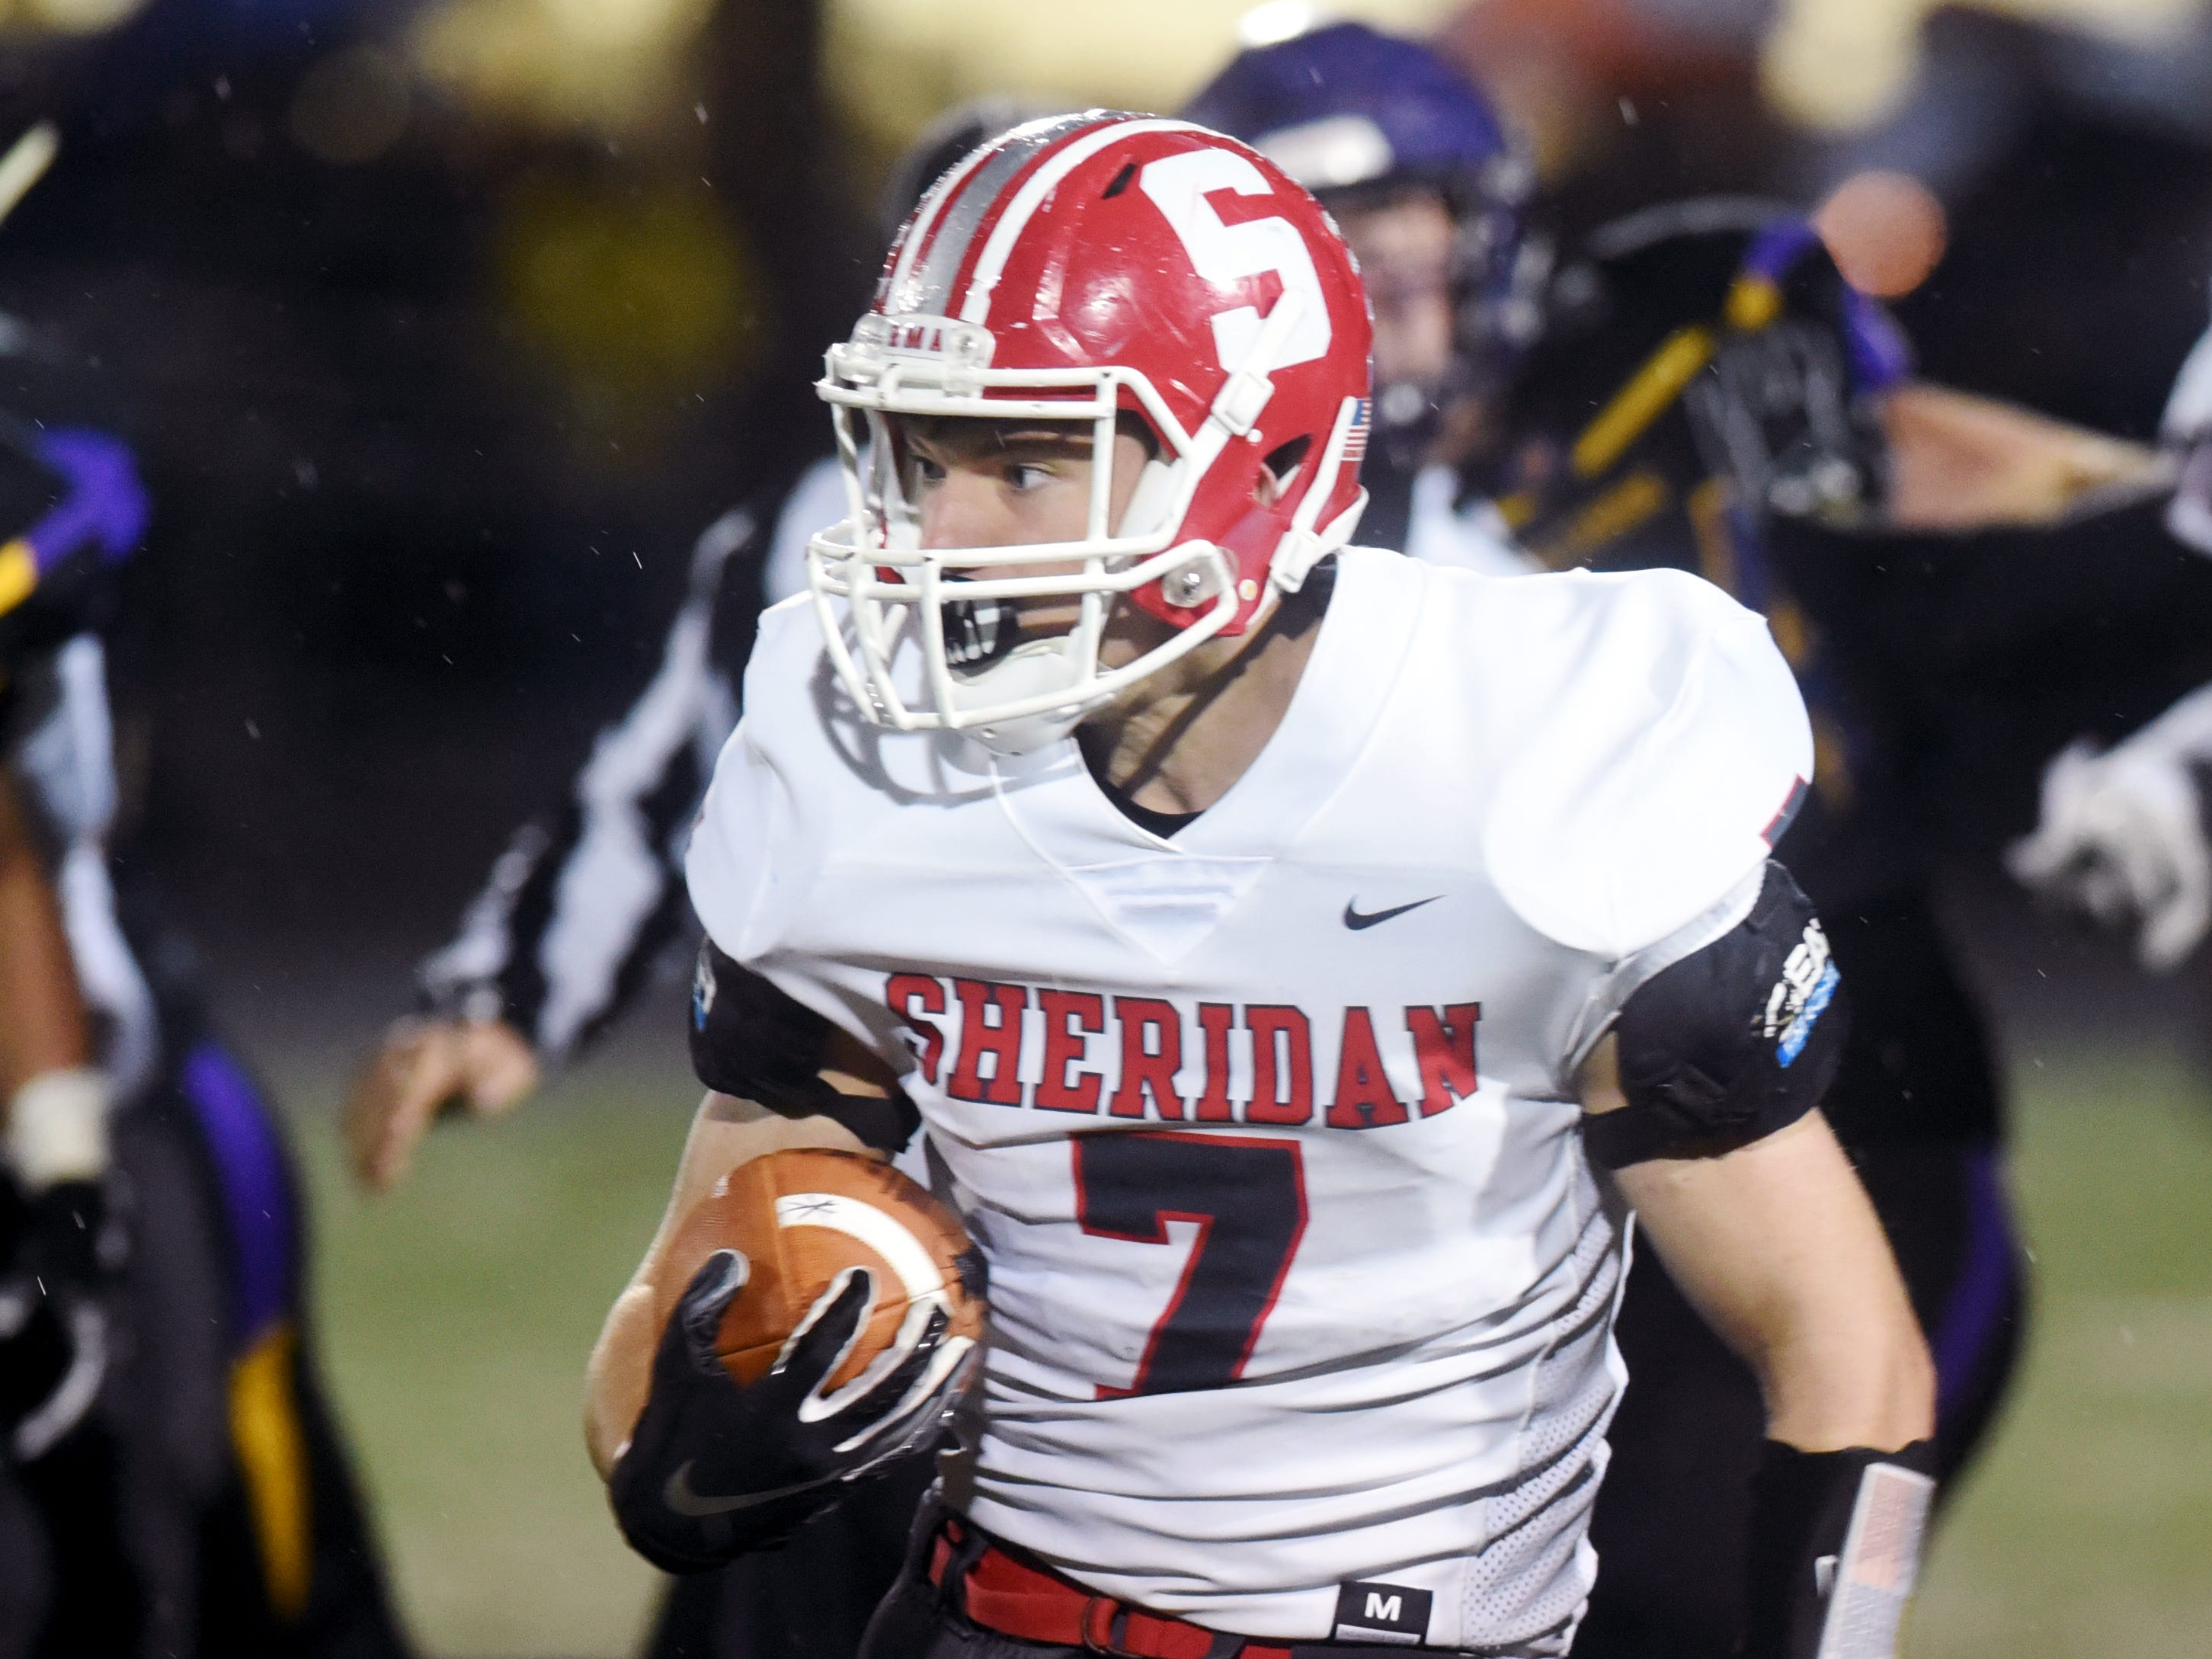 Will Hamilton looks for room to run during Sheridan's 27-19 win against No. 2 ranked Bellbrook in a Division III, Region 11 quarterfinal on Friday at Miami Valley South Stadium.